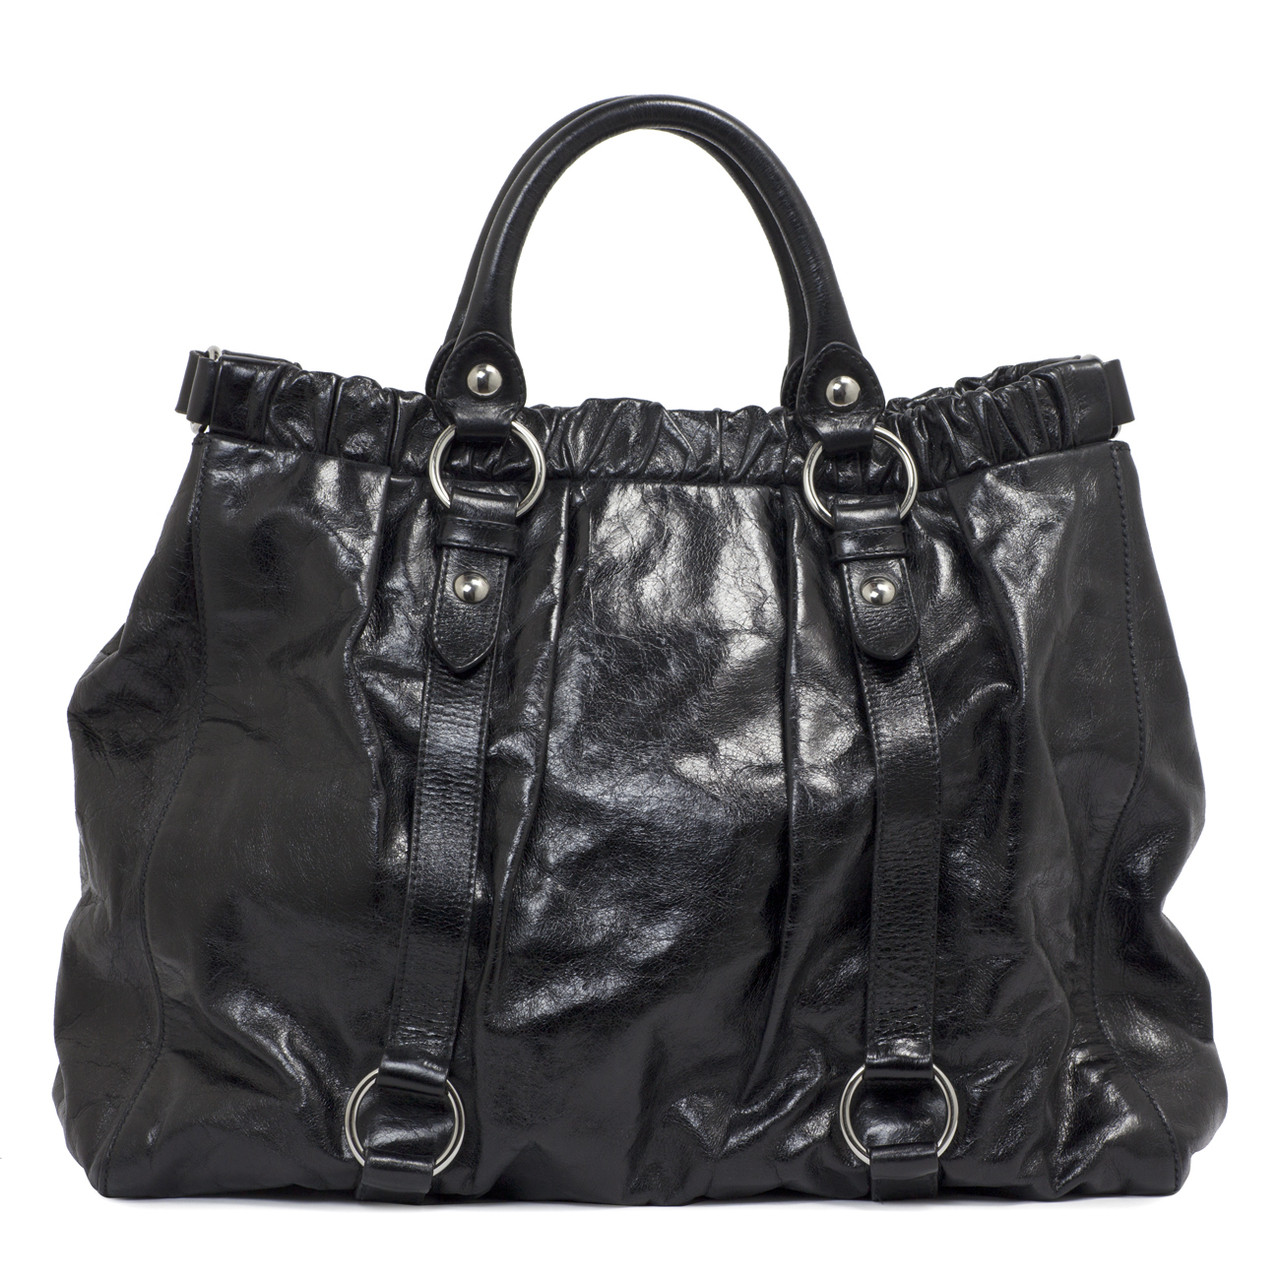 86ddcb412145 Miu Miu Black Vitello Gathered Tote - modaselle